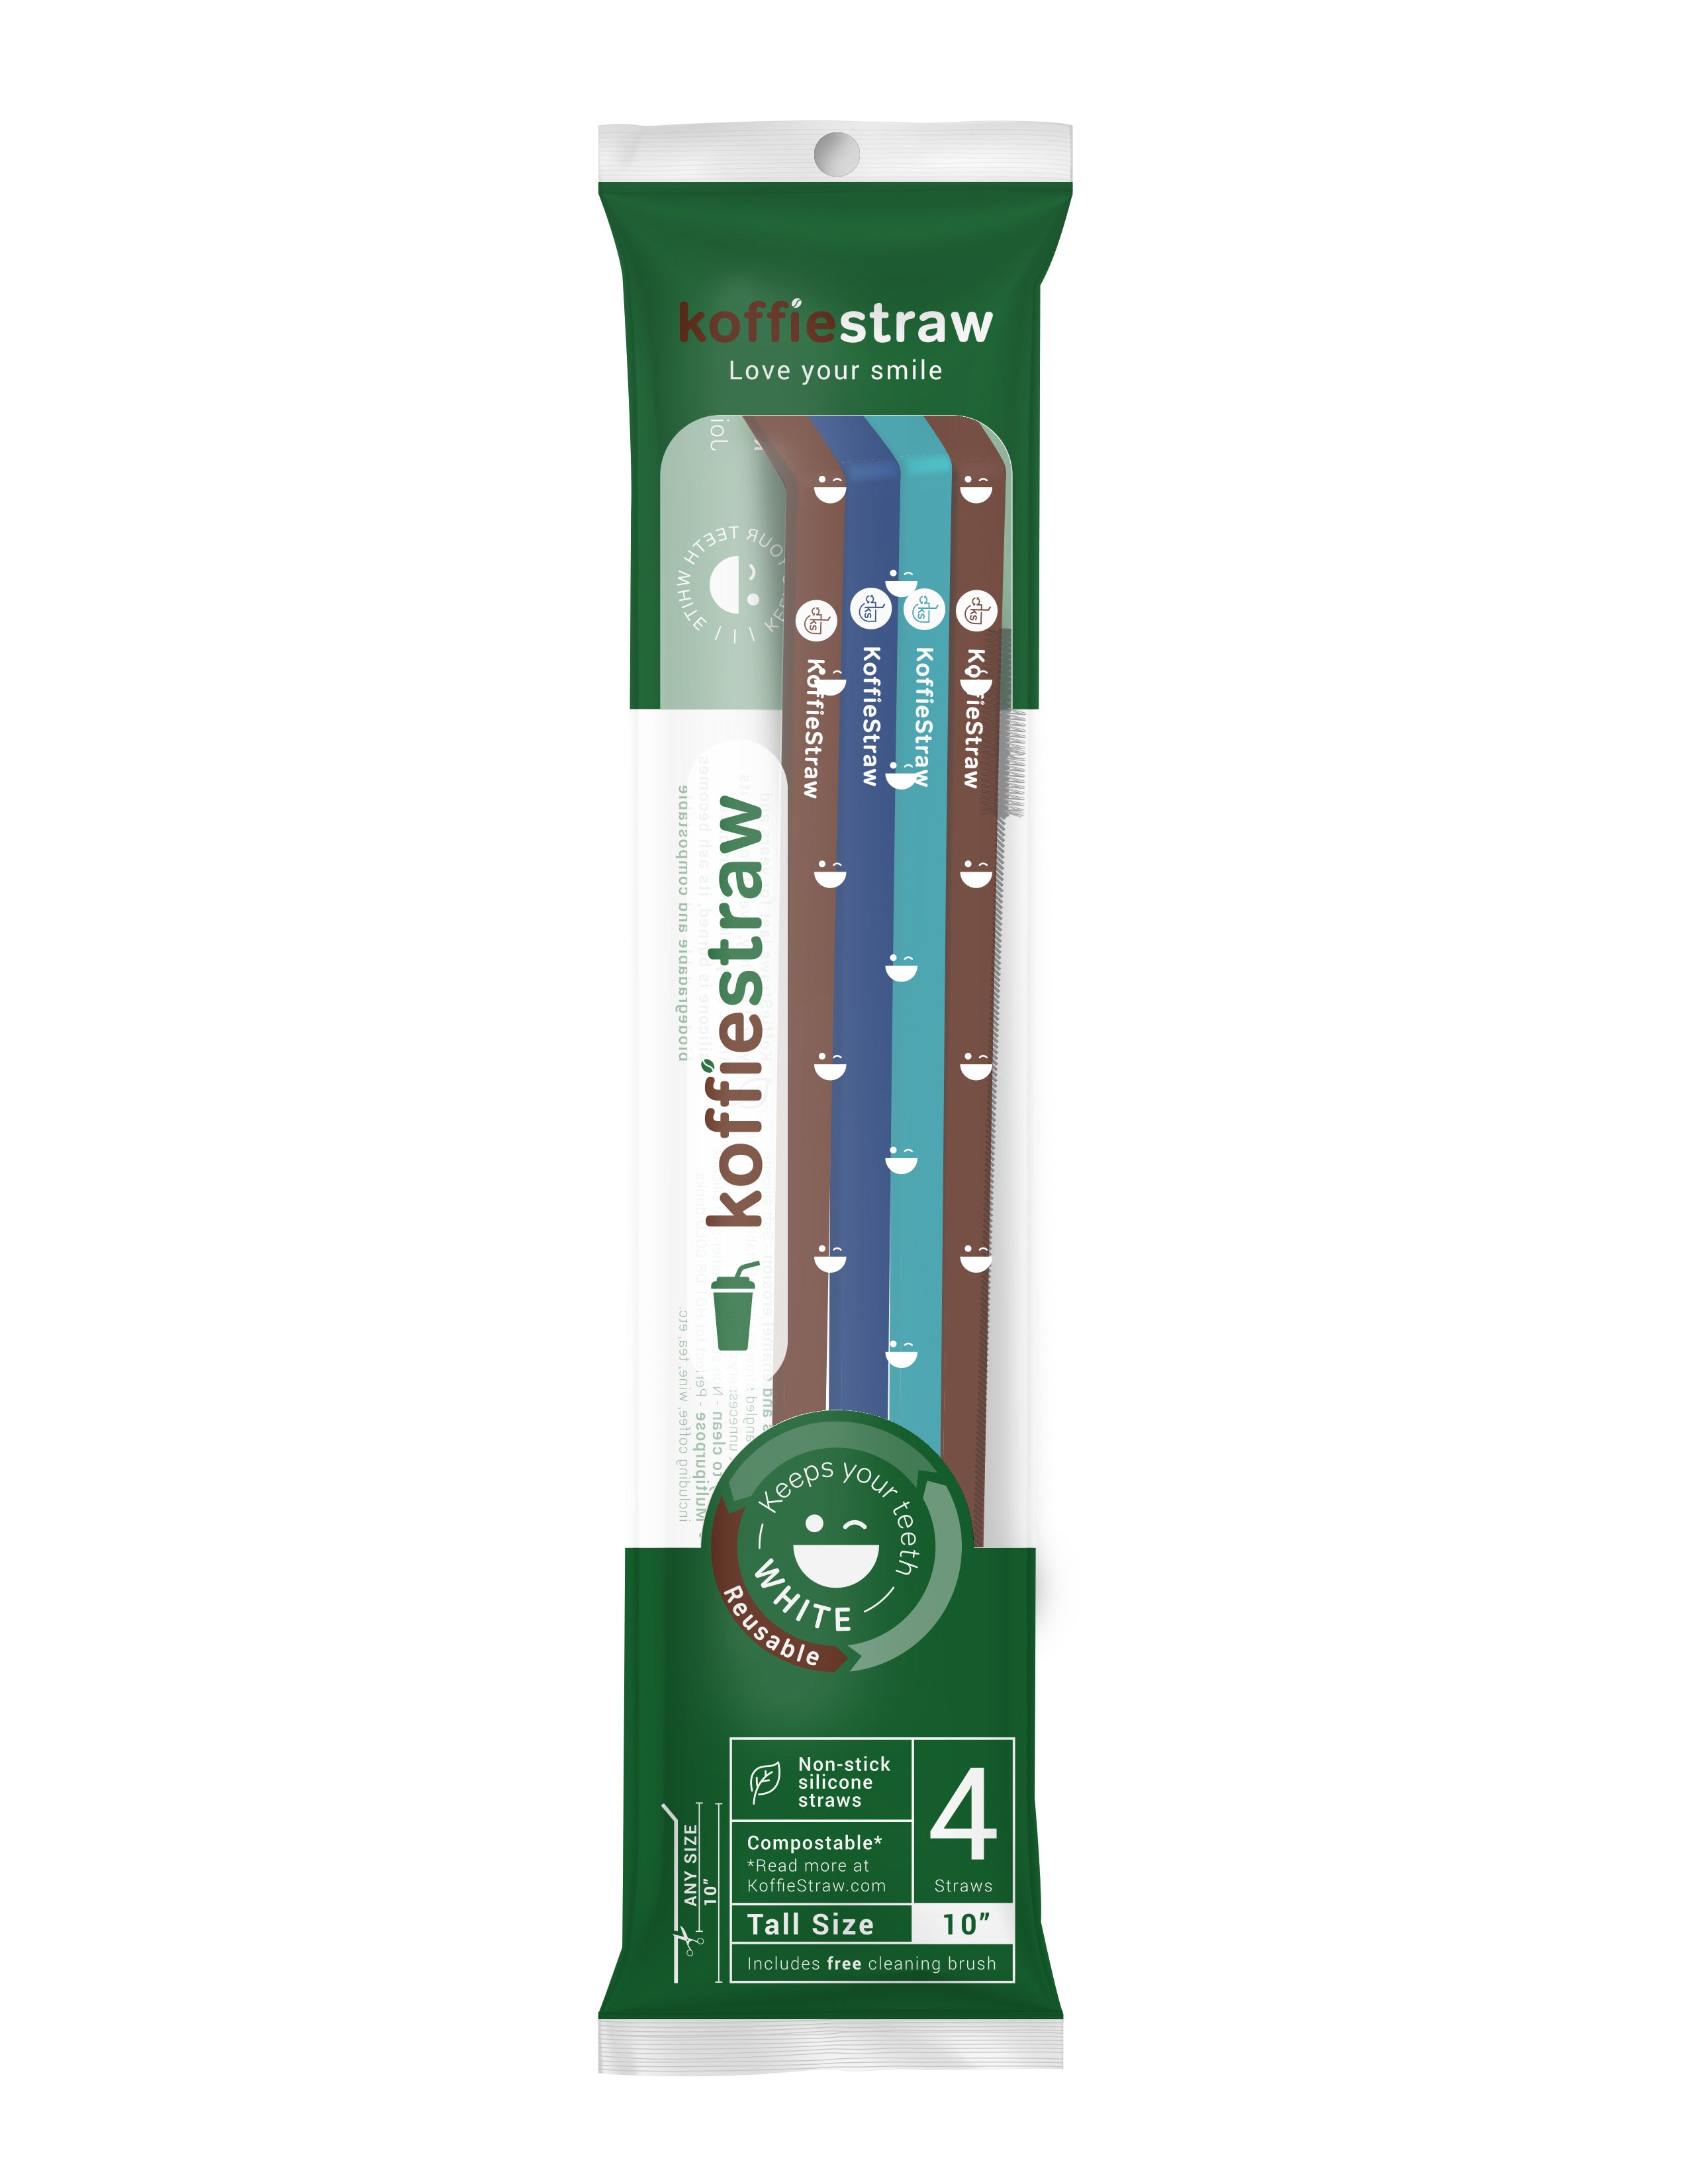 "Reusable Koffie Straw 4-PACK: Mocha, Navy, Surf, Mocha (all 10"") with brush (in compostable packaging)"